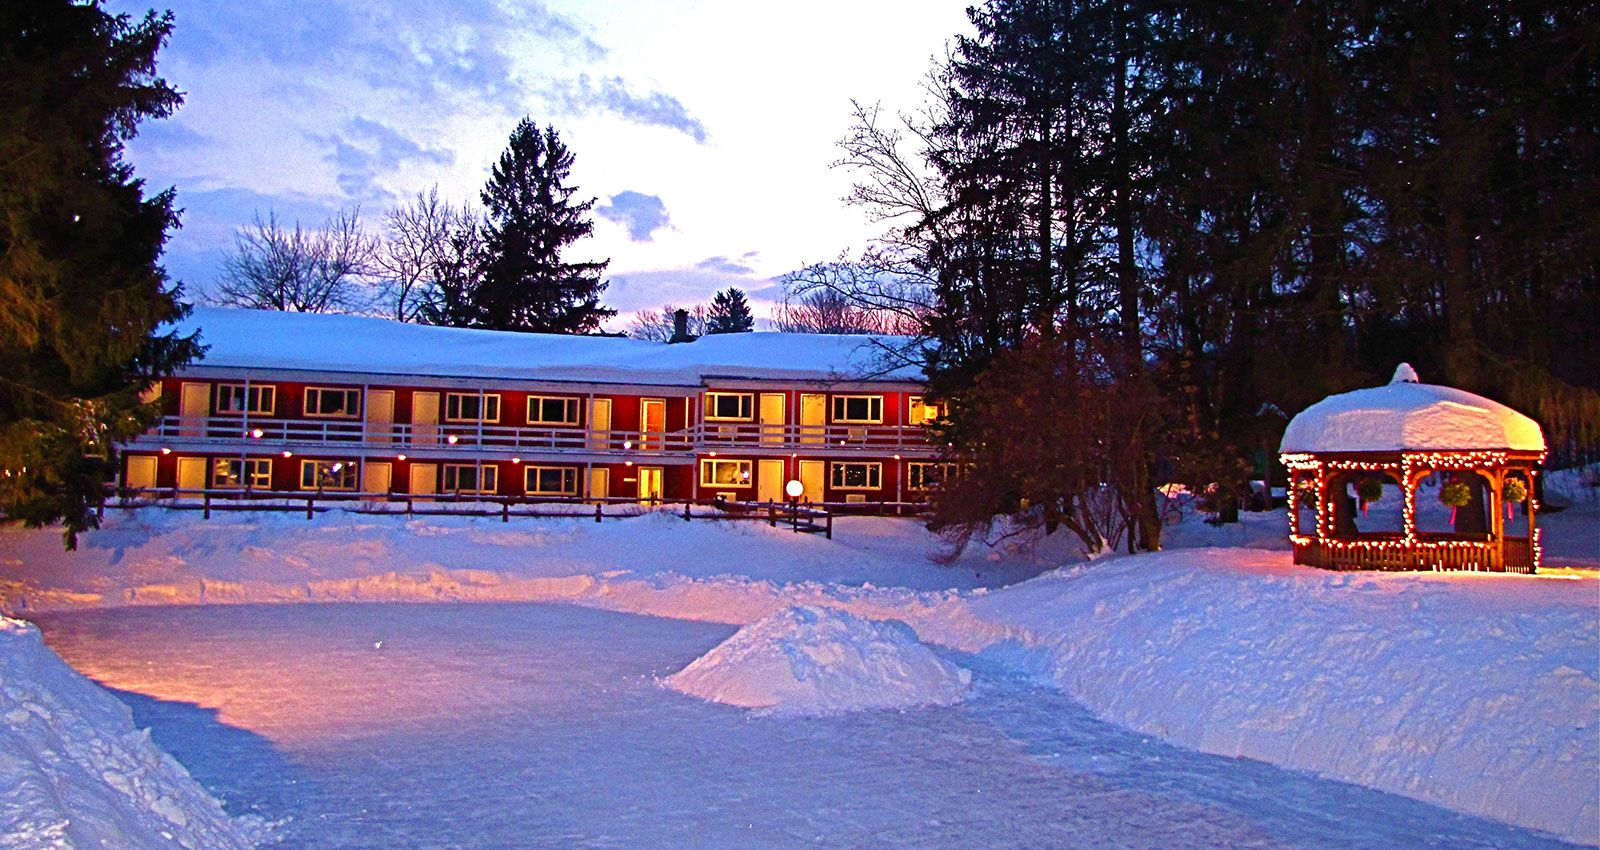 vermont bottom university registry dc lincoln foggy comfort of in washington nh listing inspirational inn hotels unique select state